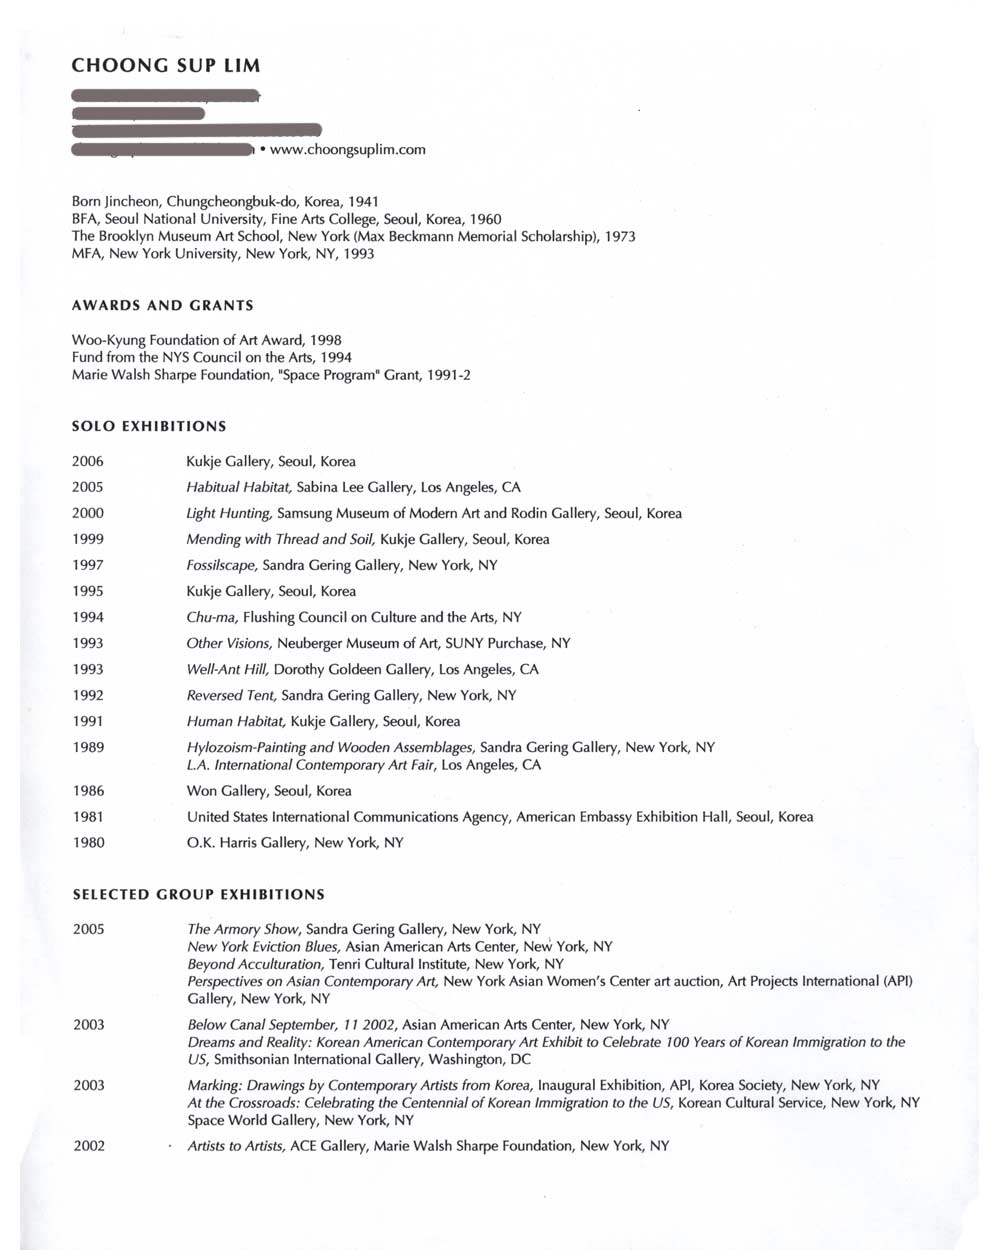 Choong Sup Lim's Resume, pg 1